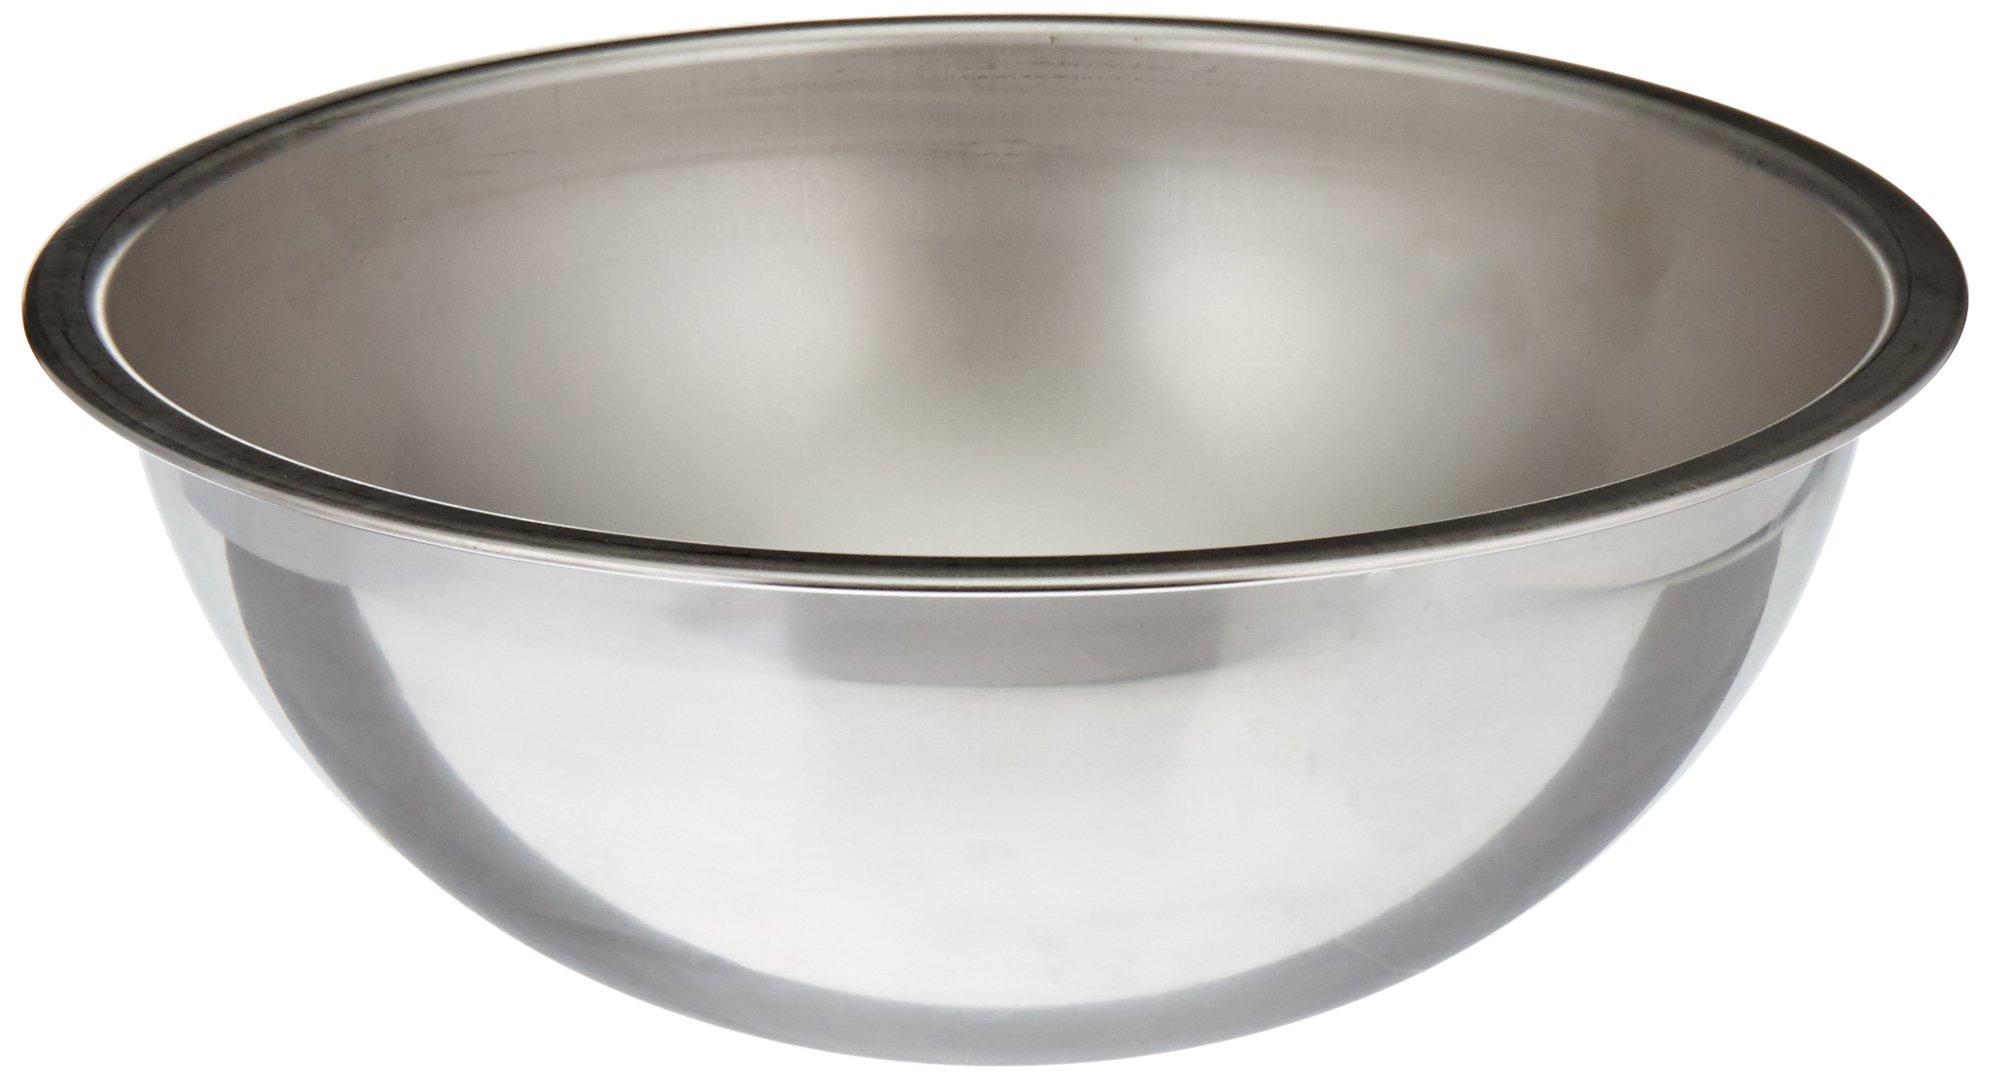 Vollrath (69050) Heavy Duty Mixing Bowl (5-Quart, Stainless Steel) by Vollrath (Image #1)